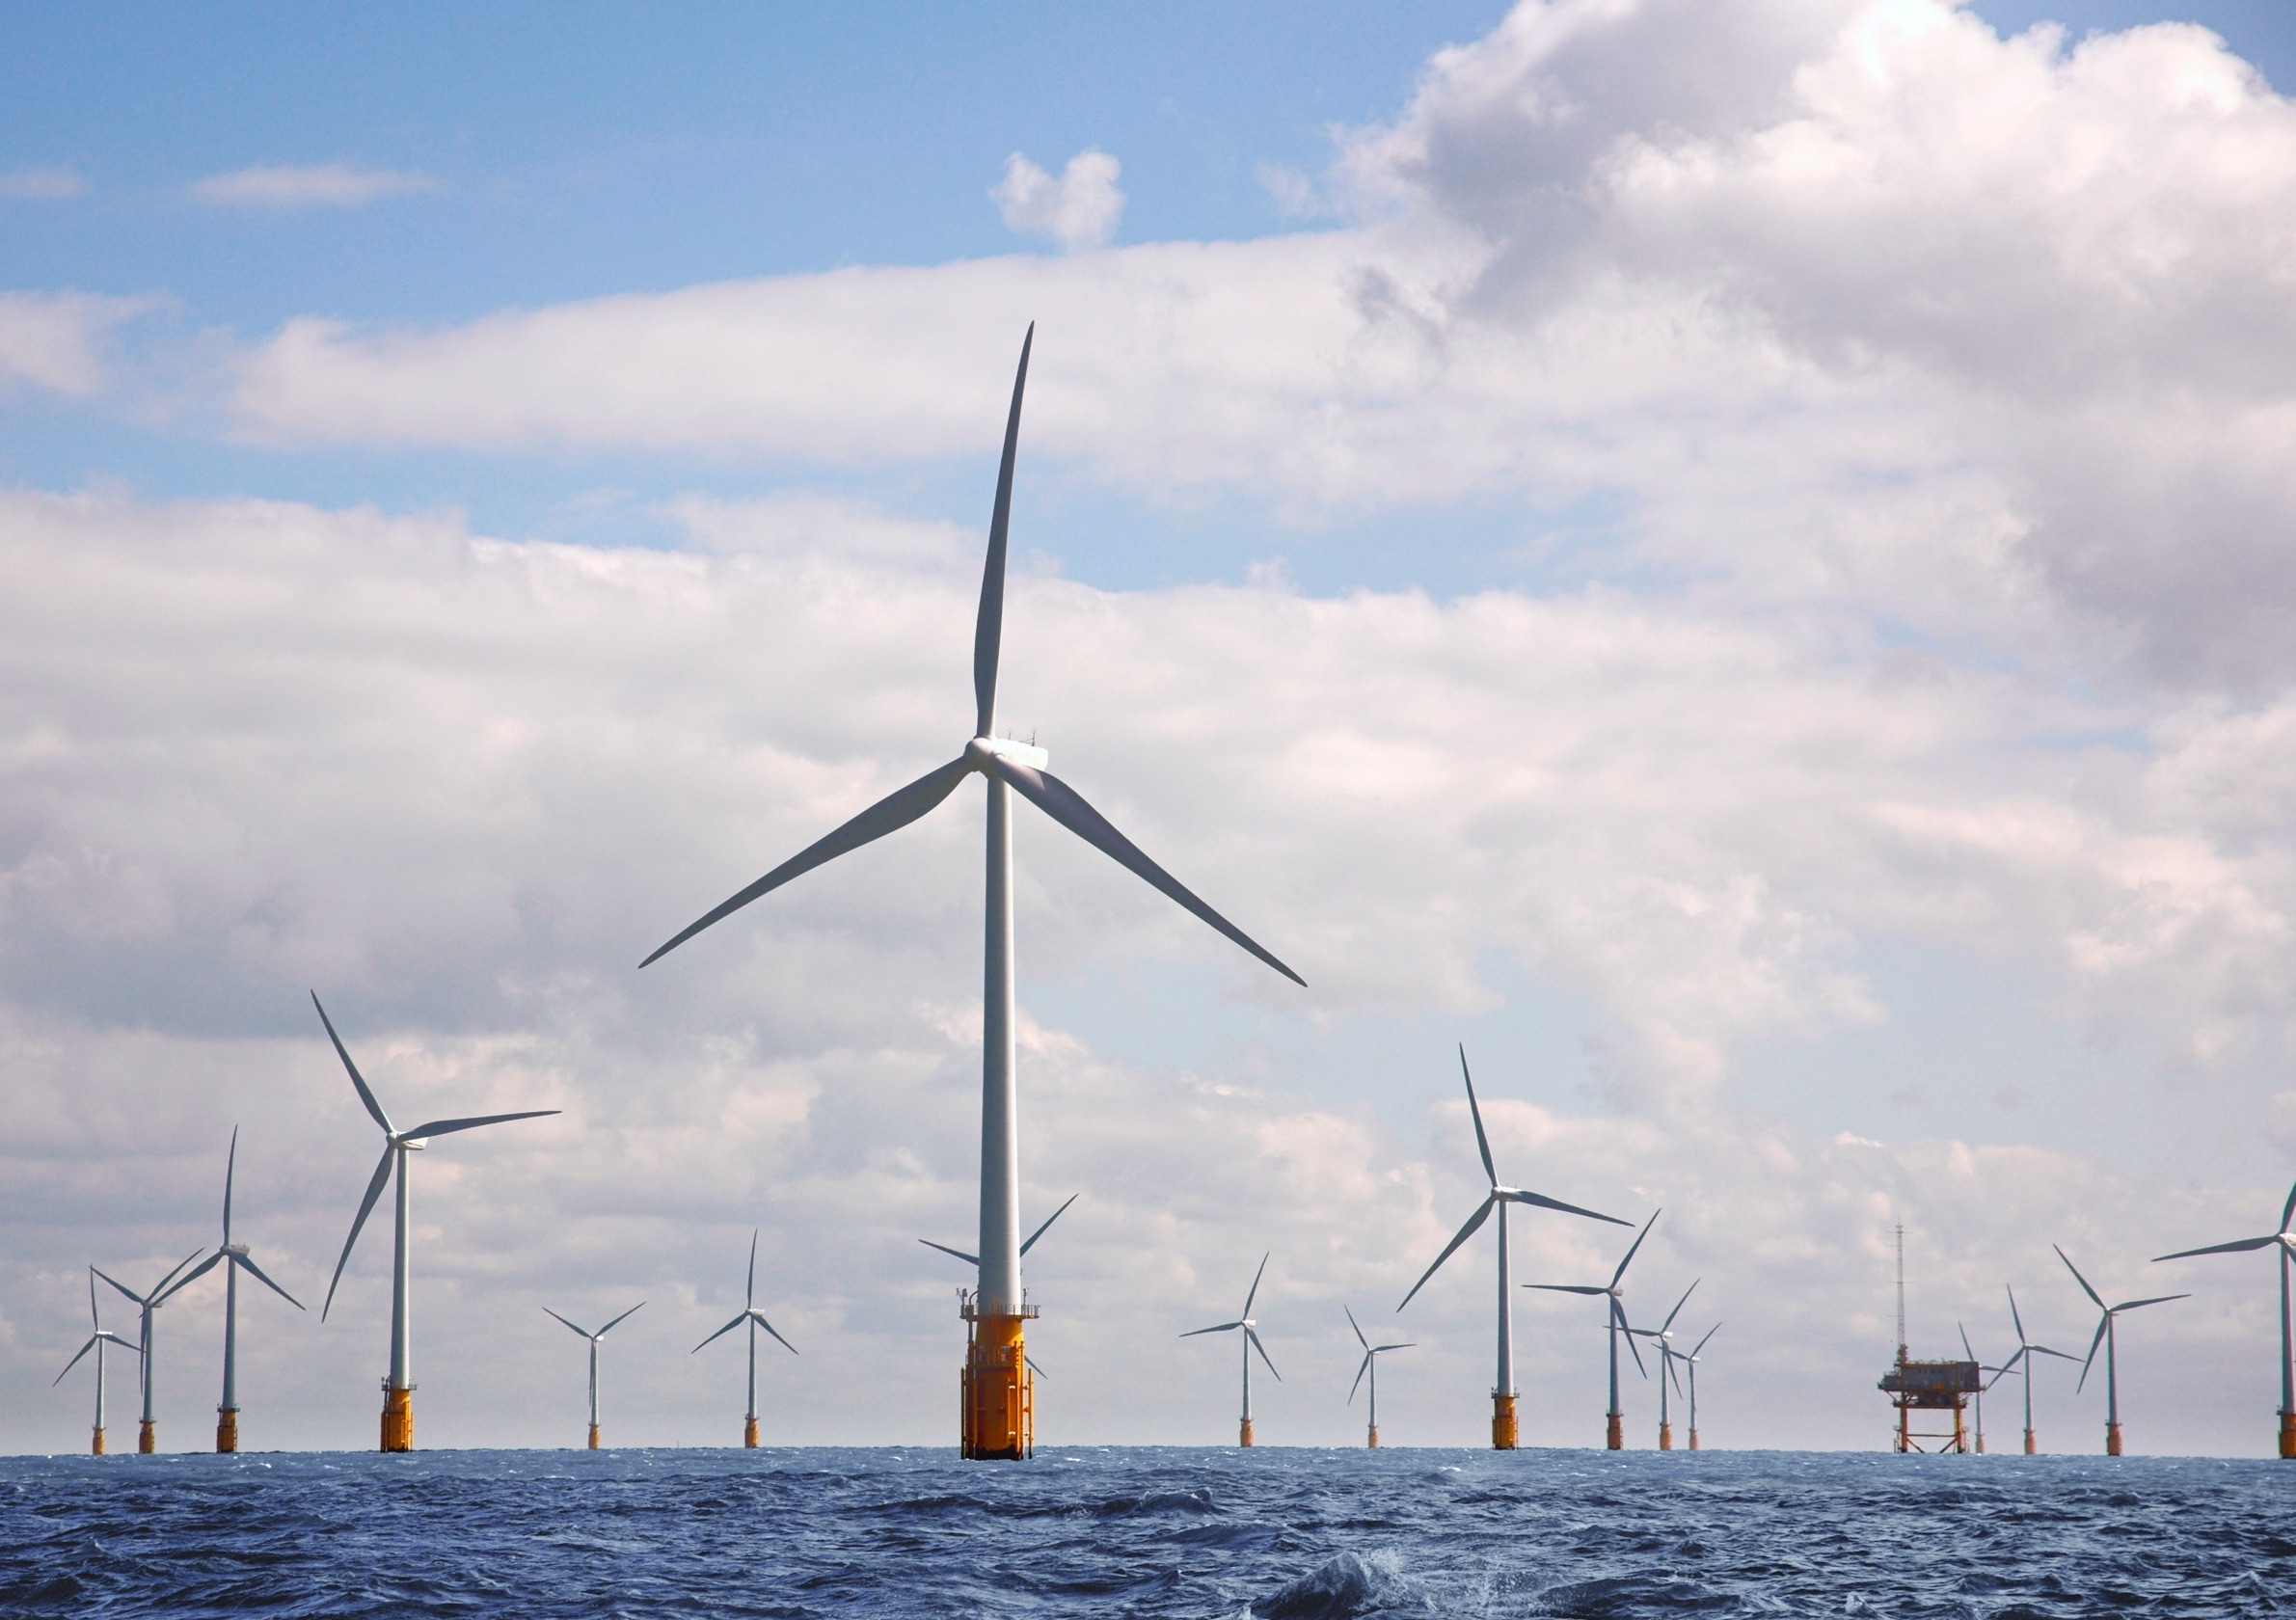 Image of wind turbines located in the sea, with one great wind turbine in the center of the image. Blue skies and blue water.